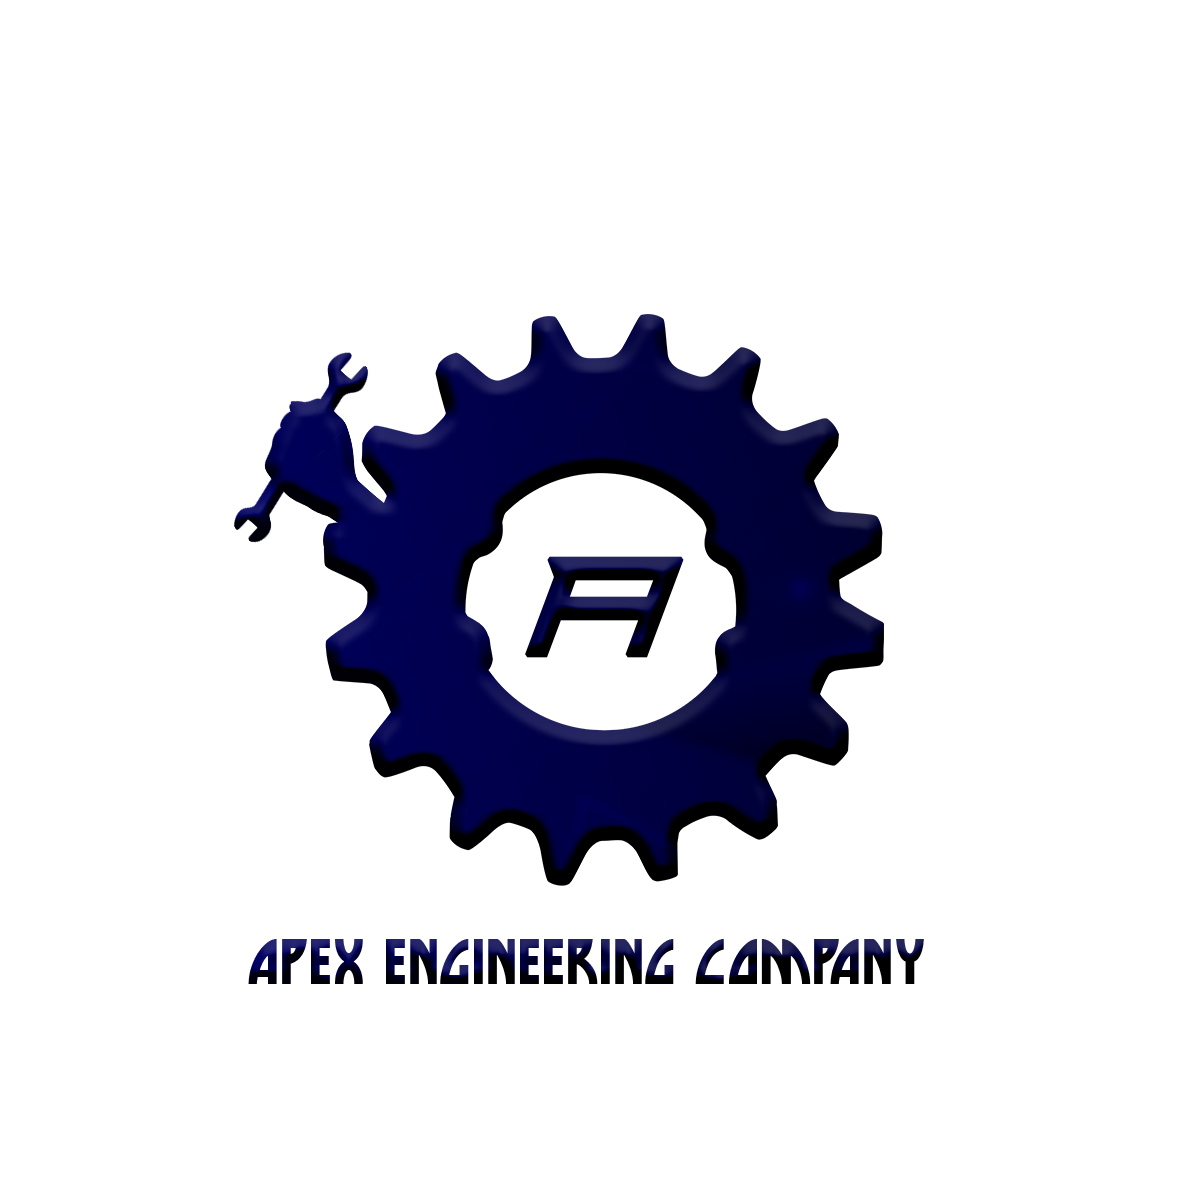 Apex Engineering Company provider